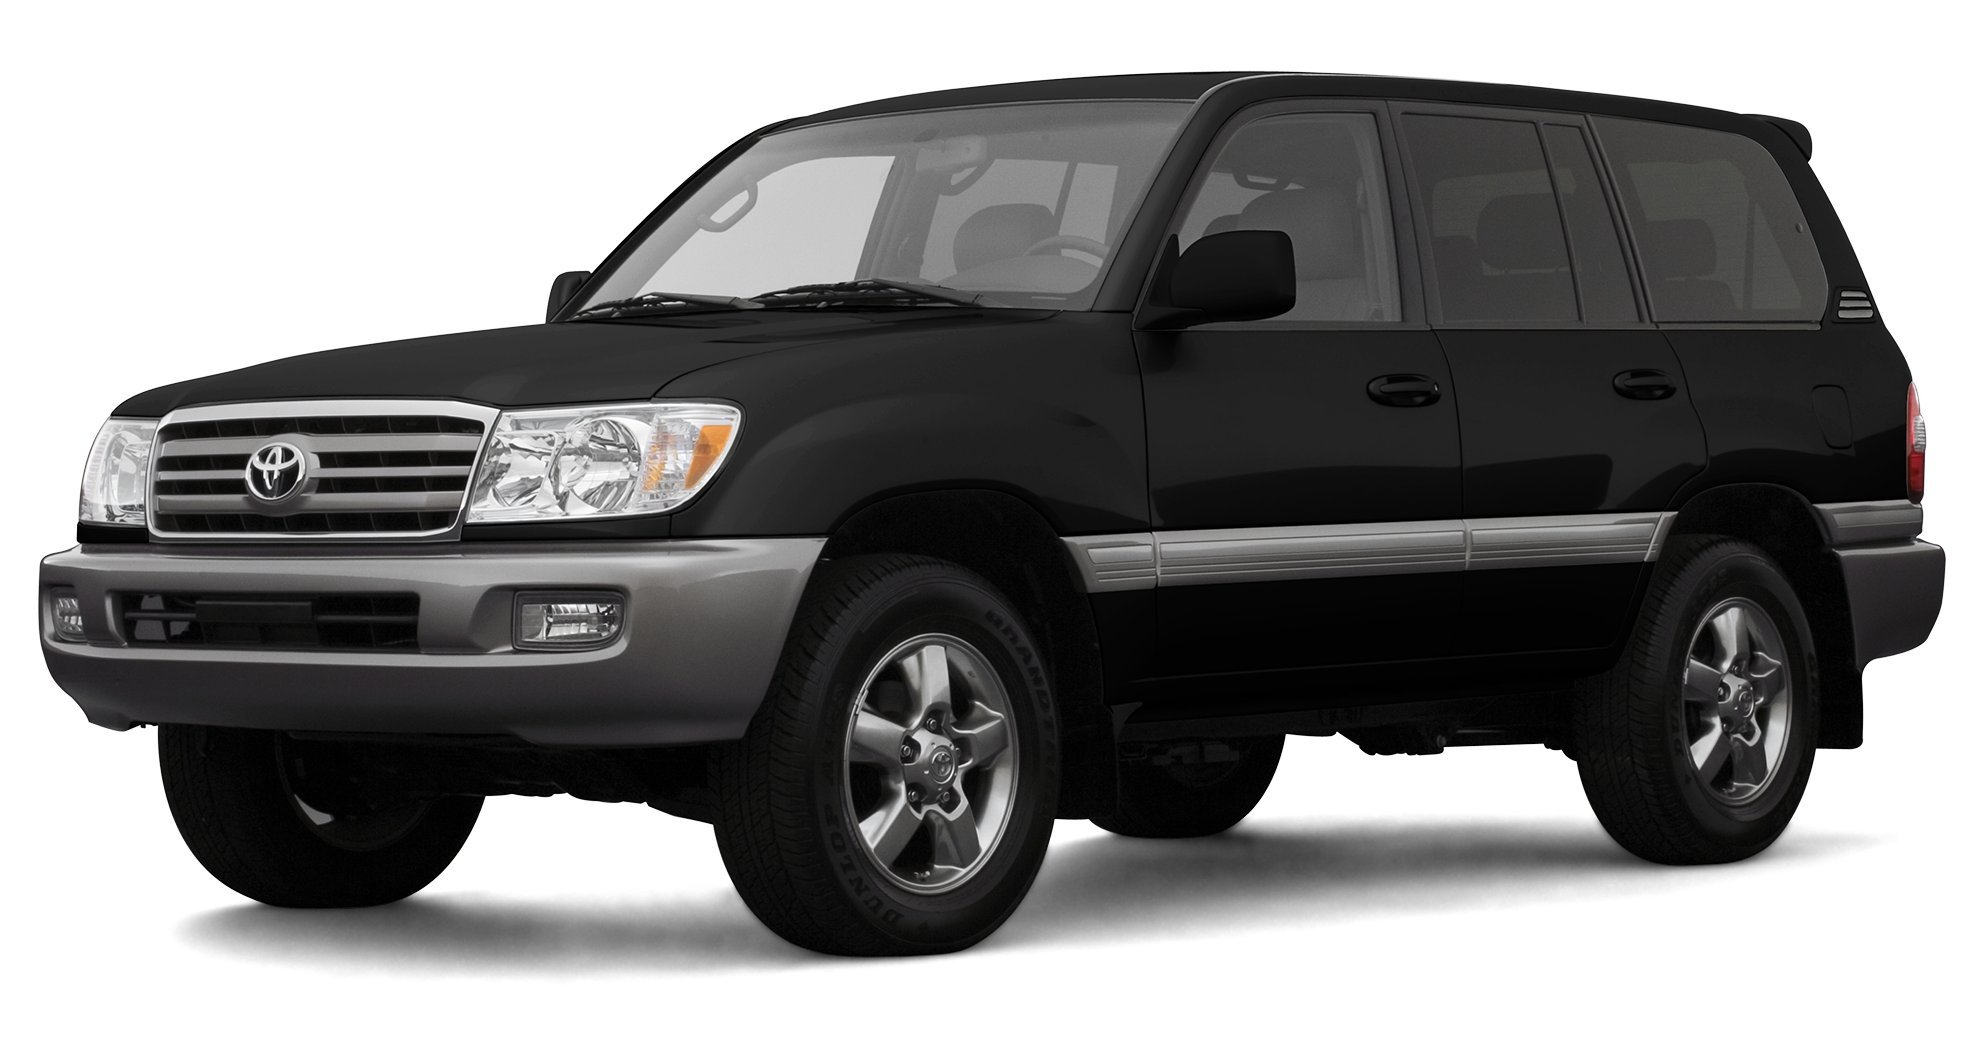 2007 toyota land cruiser reviews images and. Black Bedroom Furniture Sets. Home Design Ideas